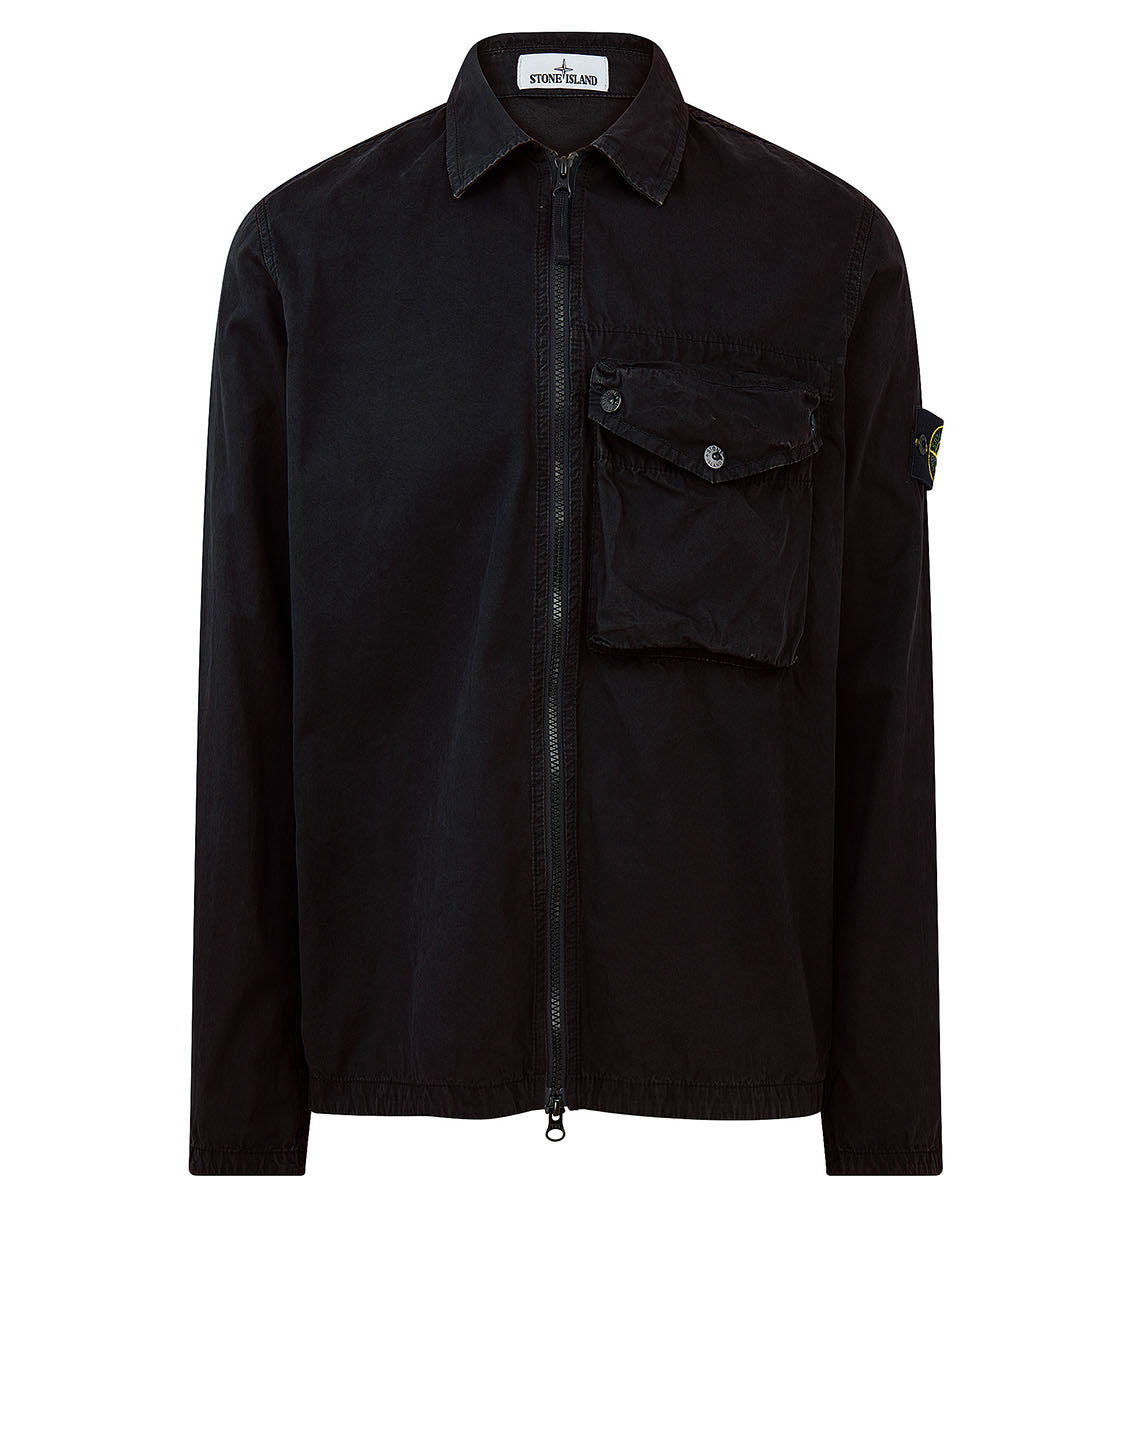 117Wn T.CO+OLD Overshirt in Black